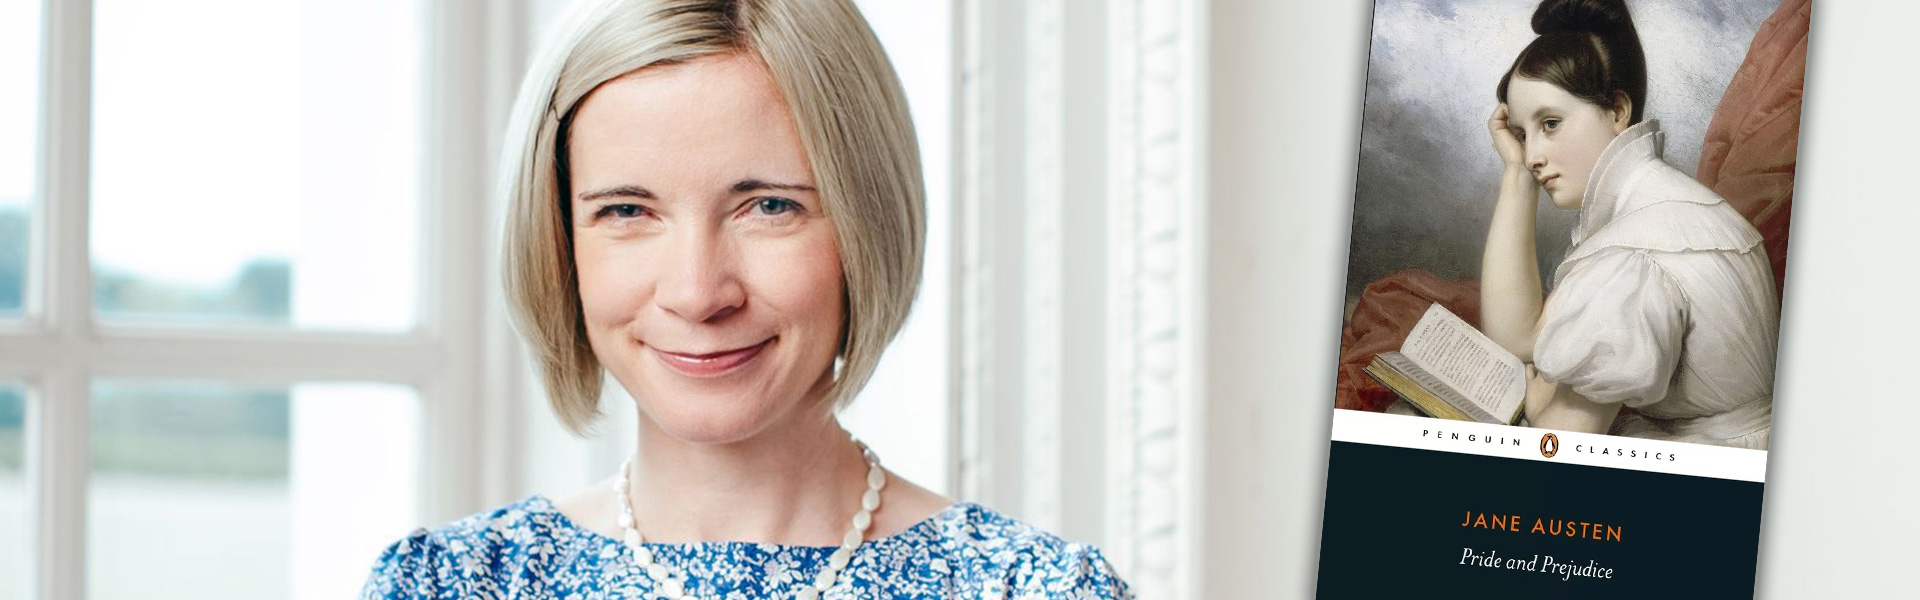 Lucy Worsley: Four Problems with Pride and Prejudice